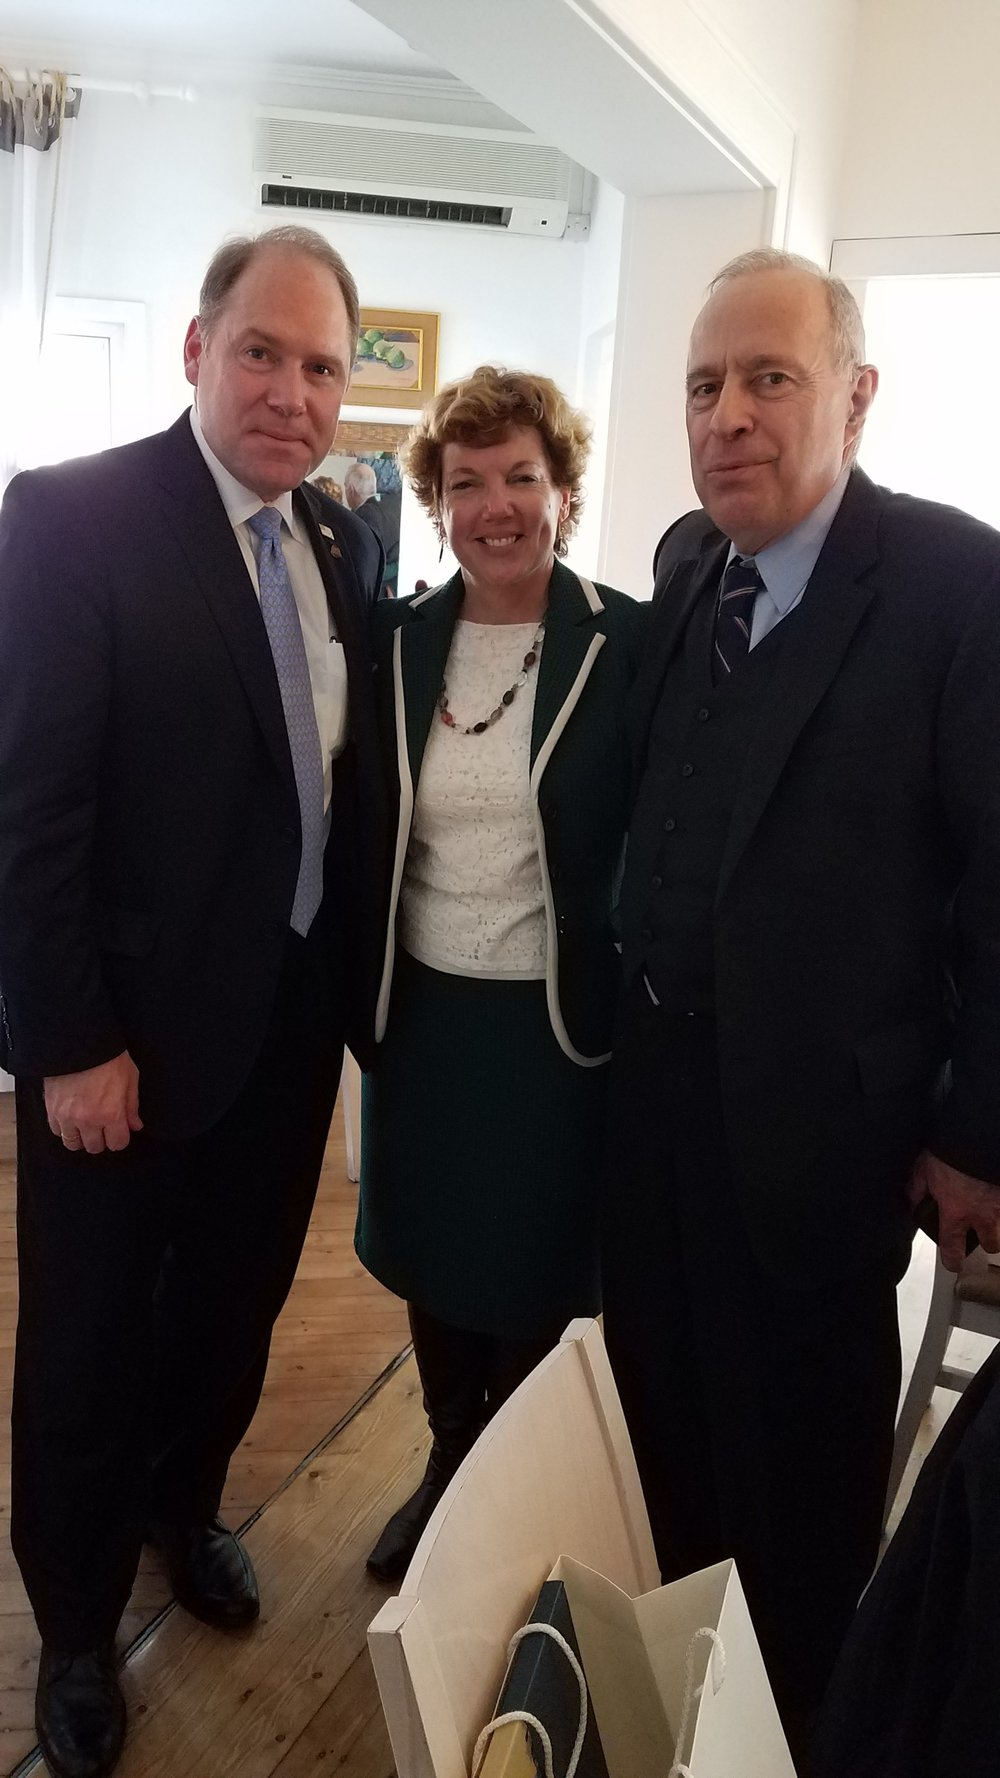 (L-R) Carl R. Hollister; U.S. Ambassador to Cyprus, Kathleen Doherty, and AHI Vice President, James Lagos.